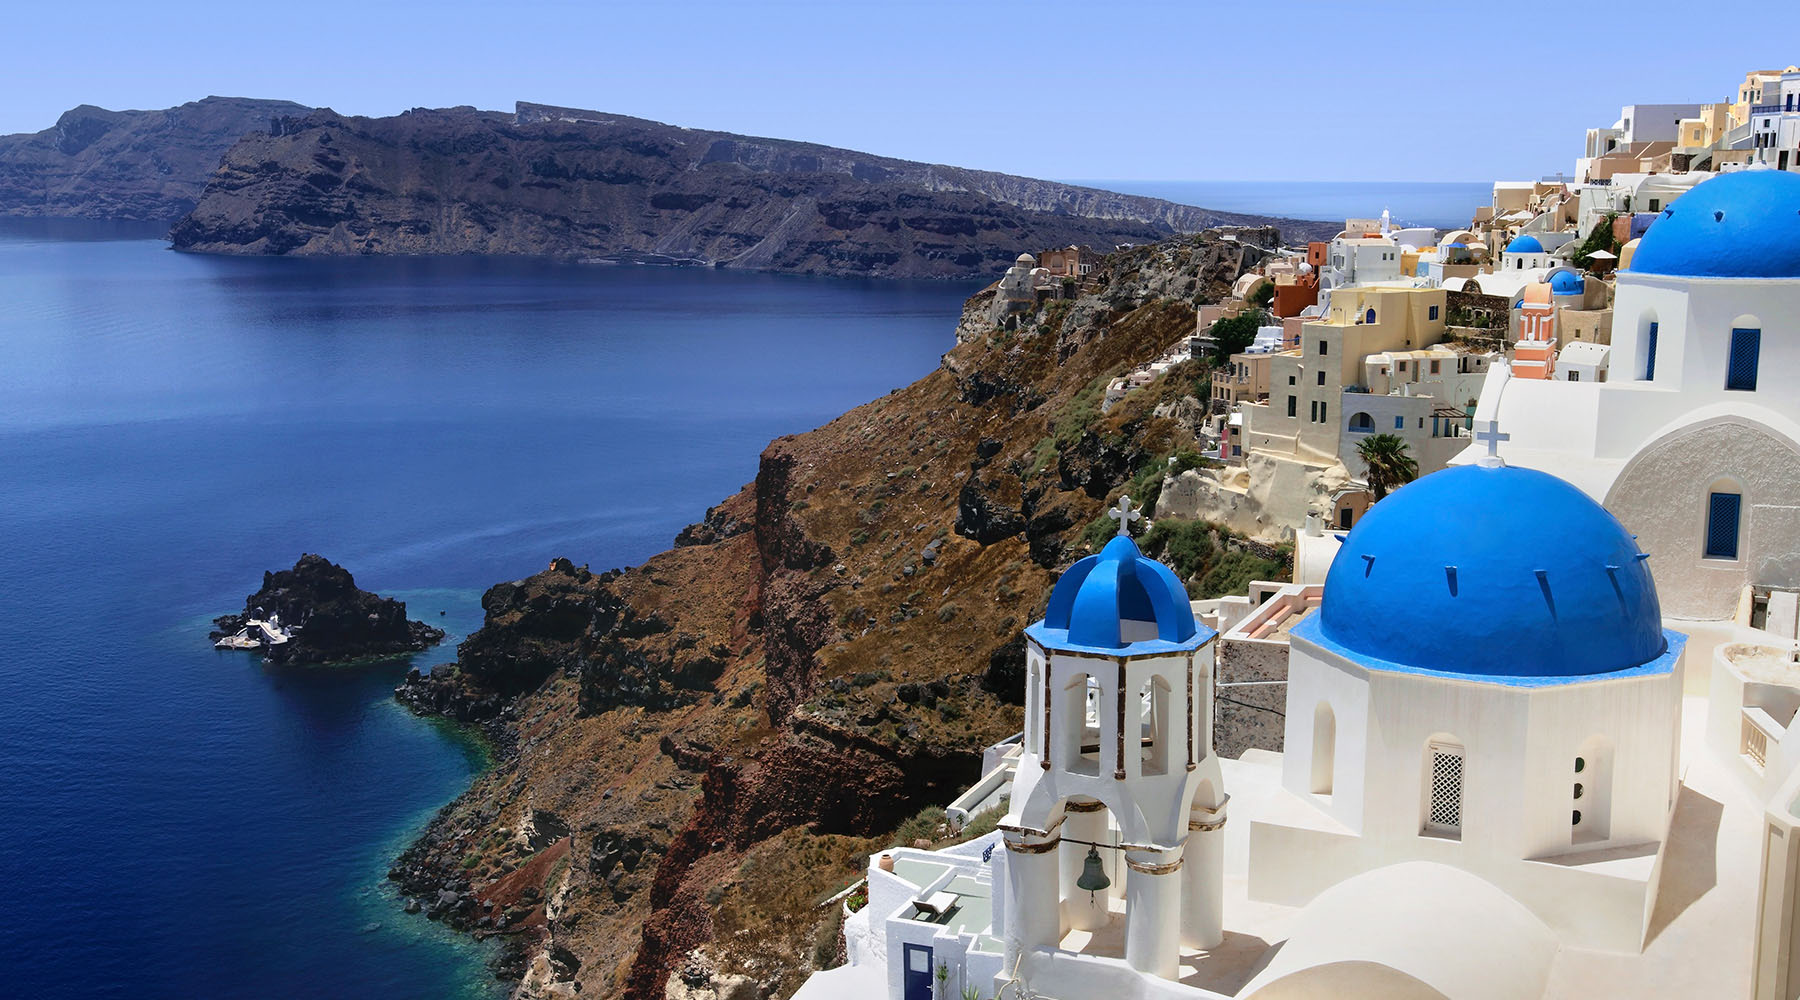 Santorini, Greece: A Photographer's Utopia